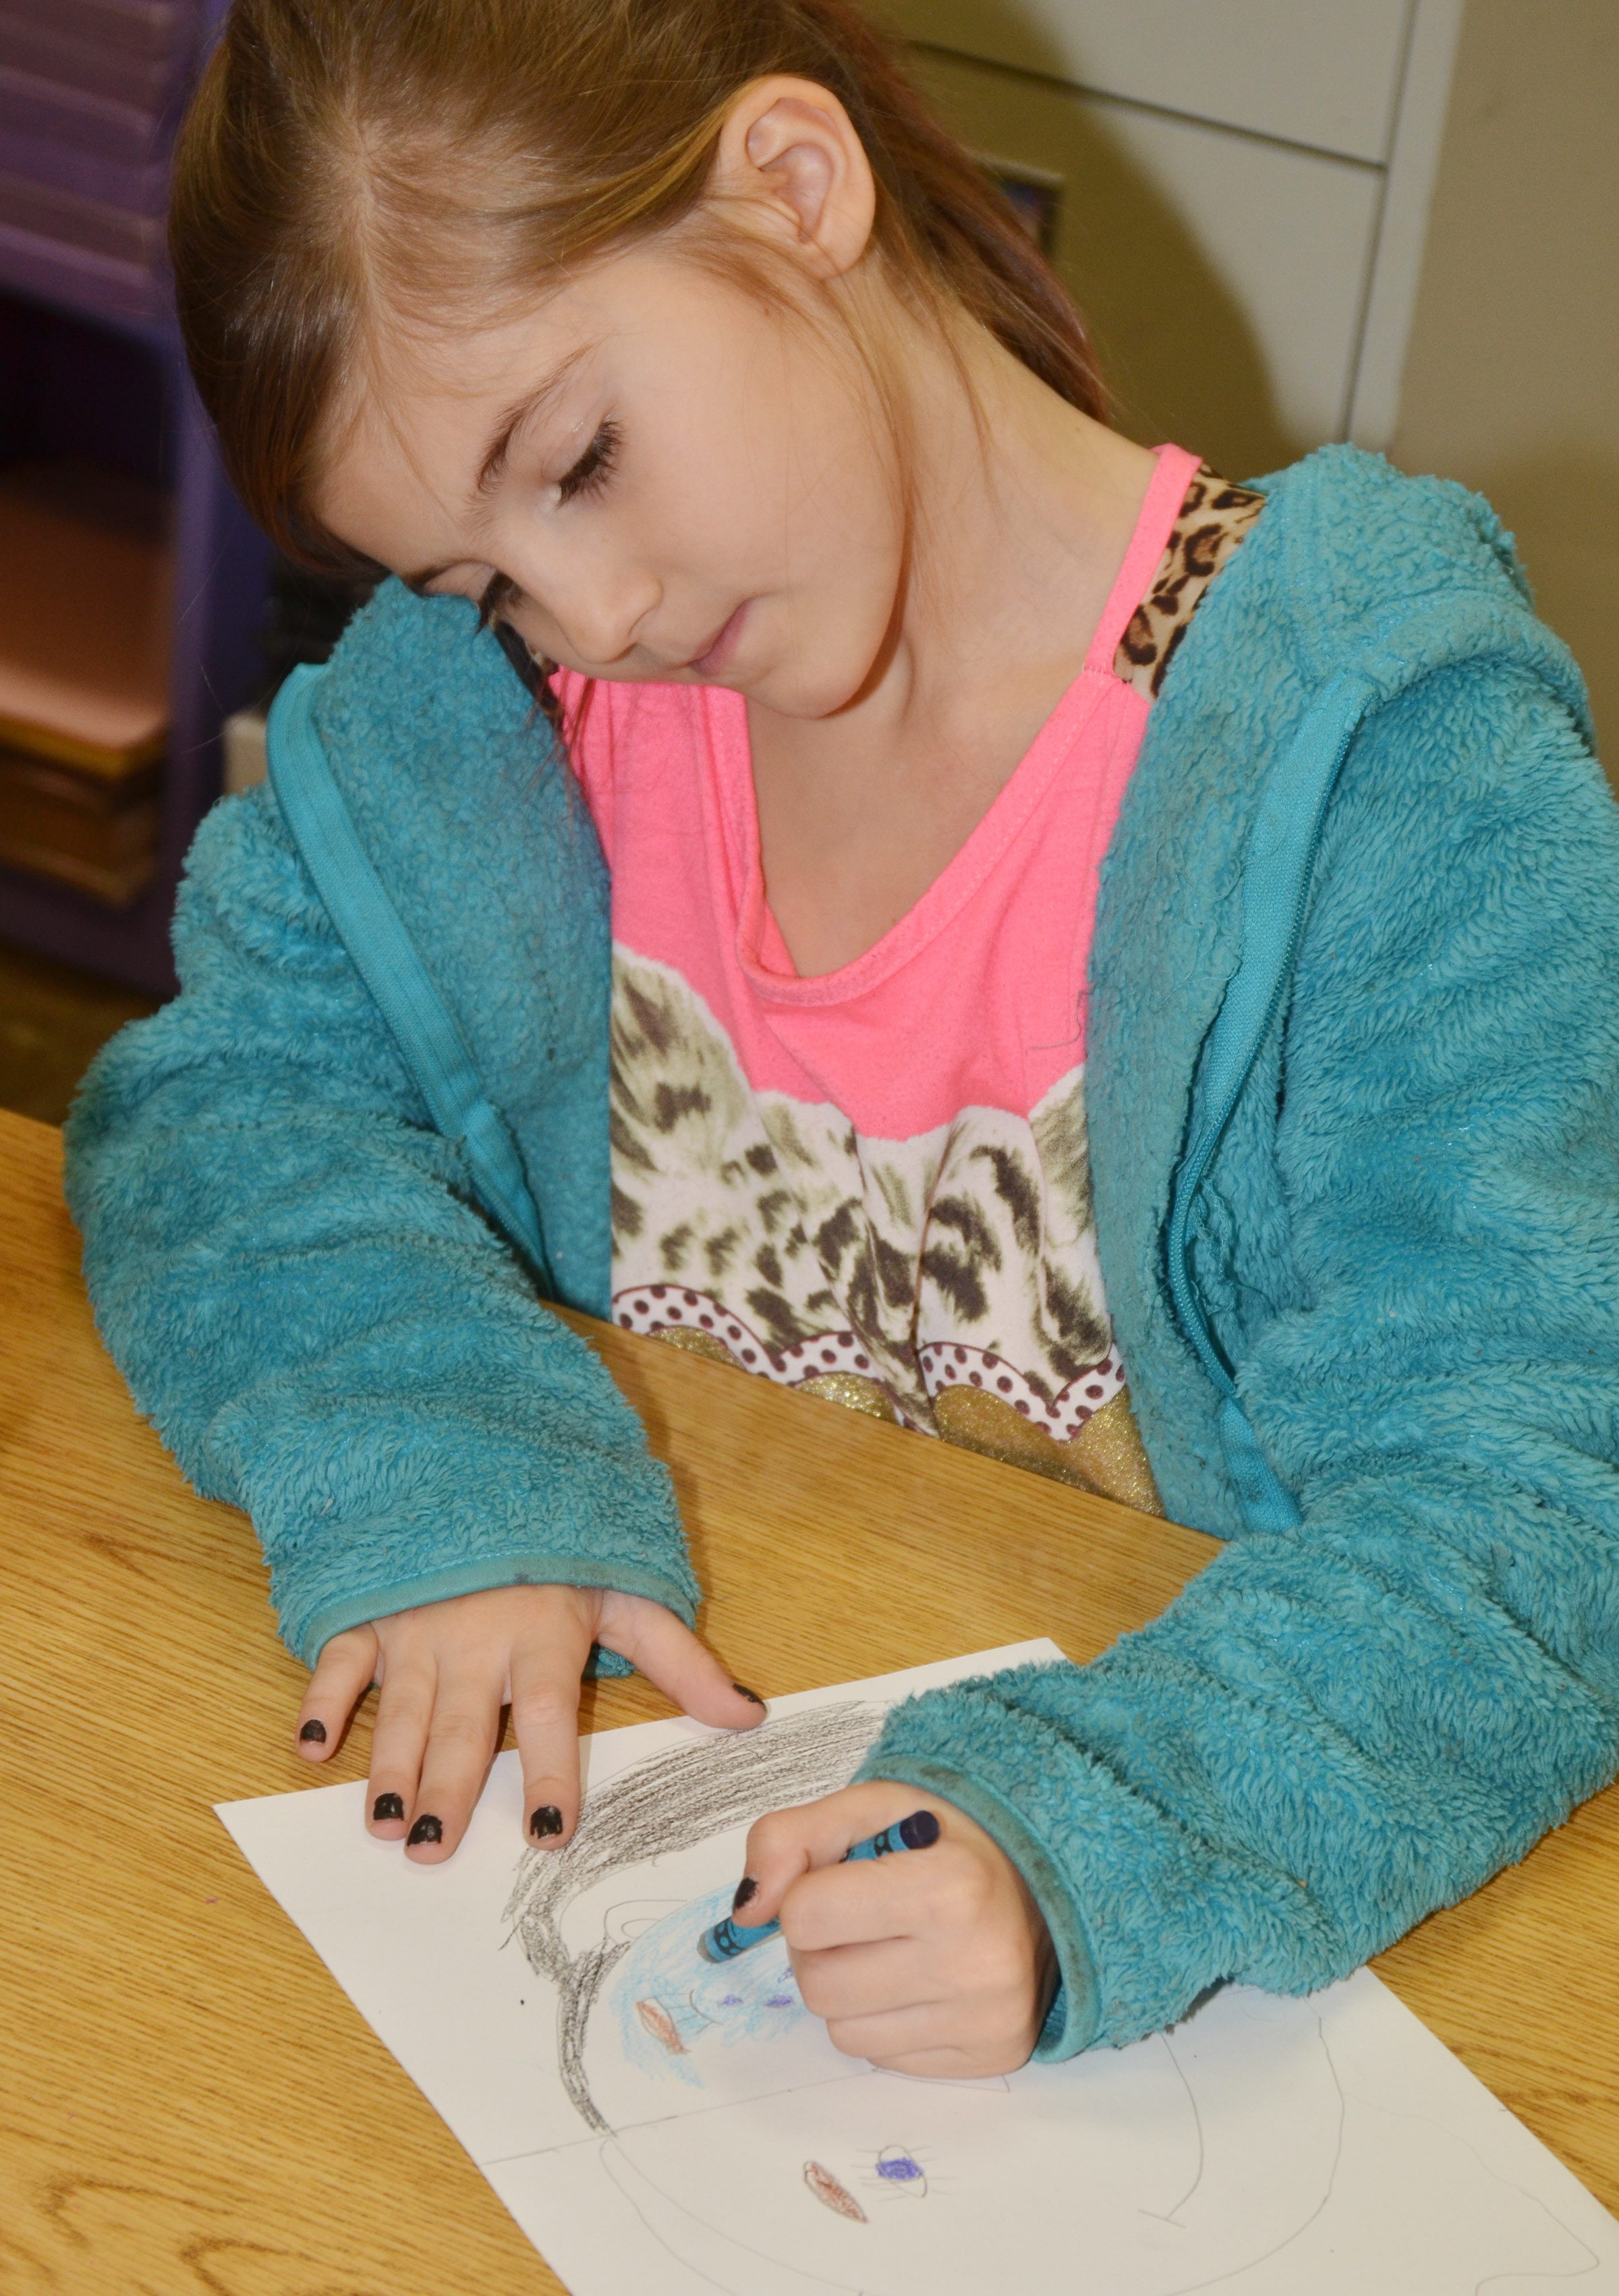 CES second-grader Madison Choate colors her warm and cool color face.